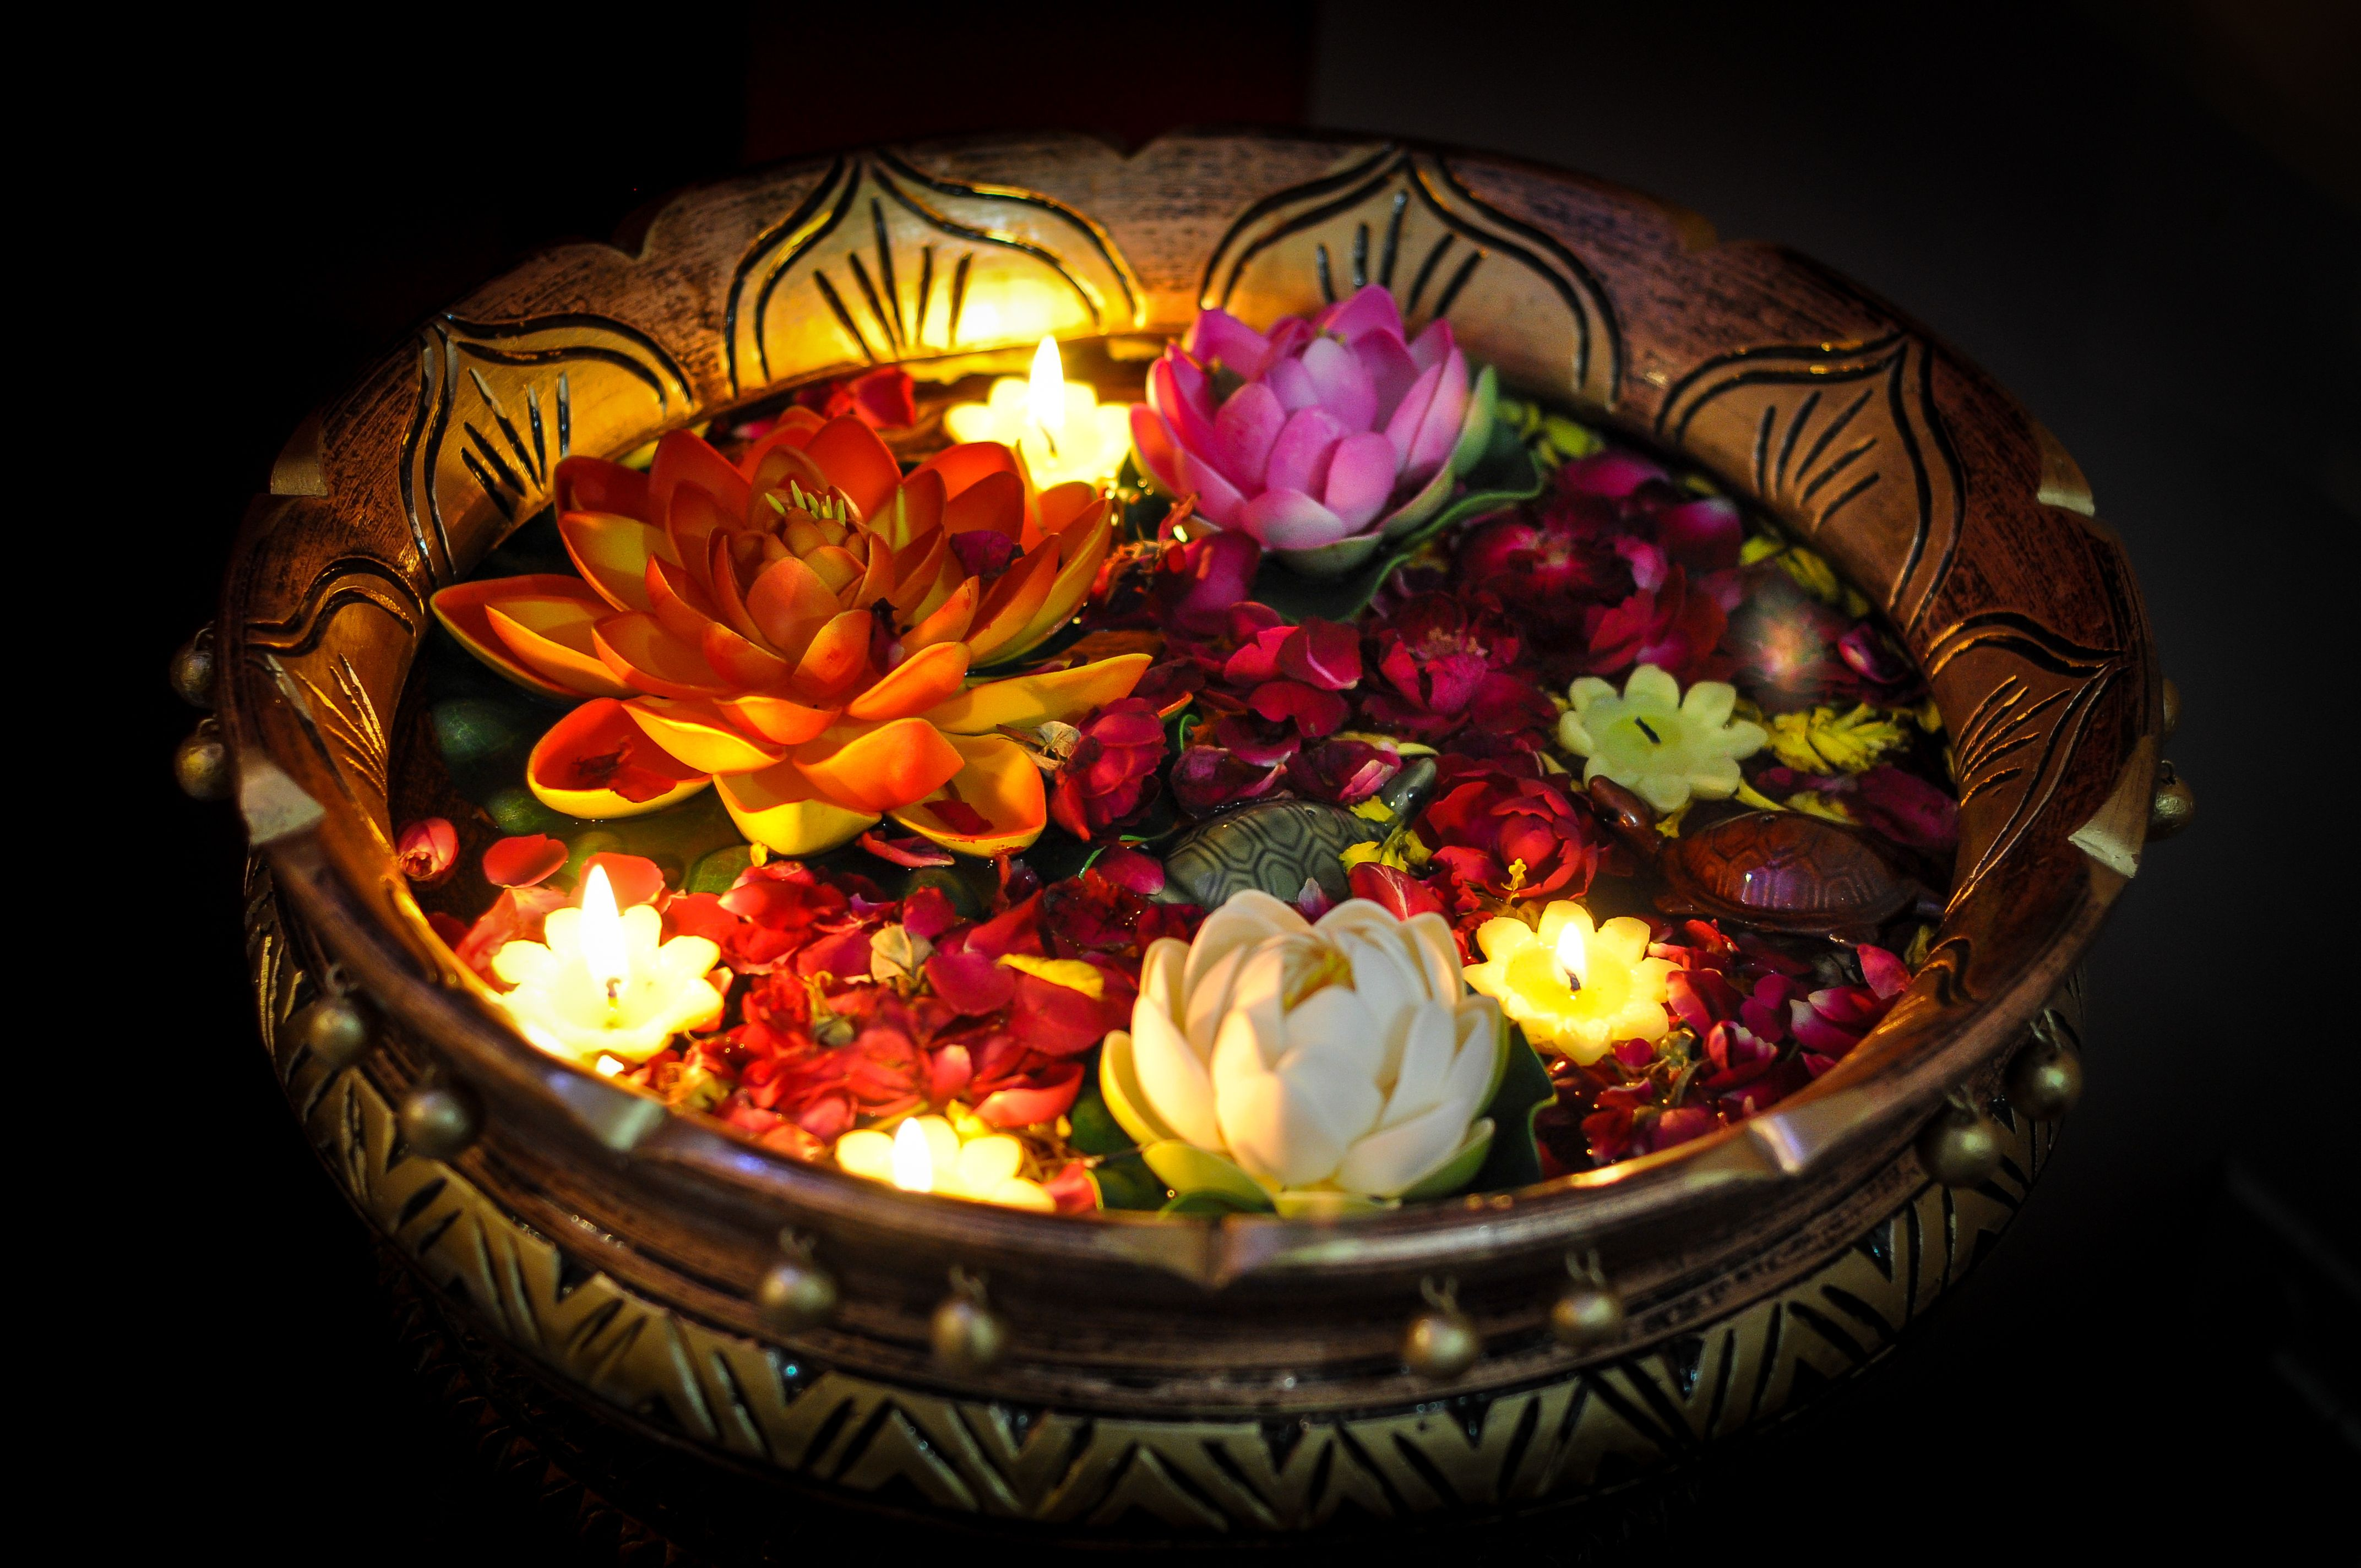 Celebration Of Diwali With Lit Up Floating Candle And Flower In A  Bowl,India.